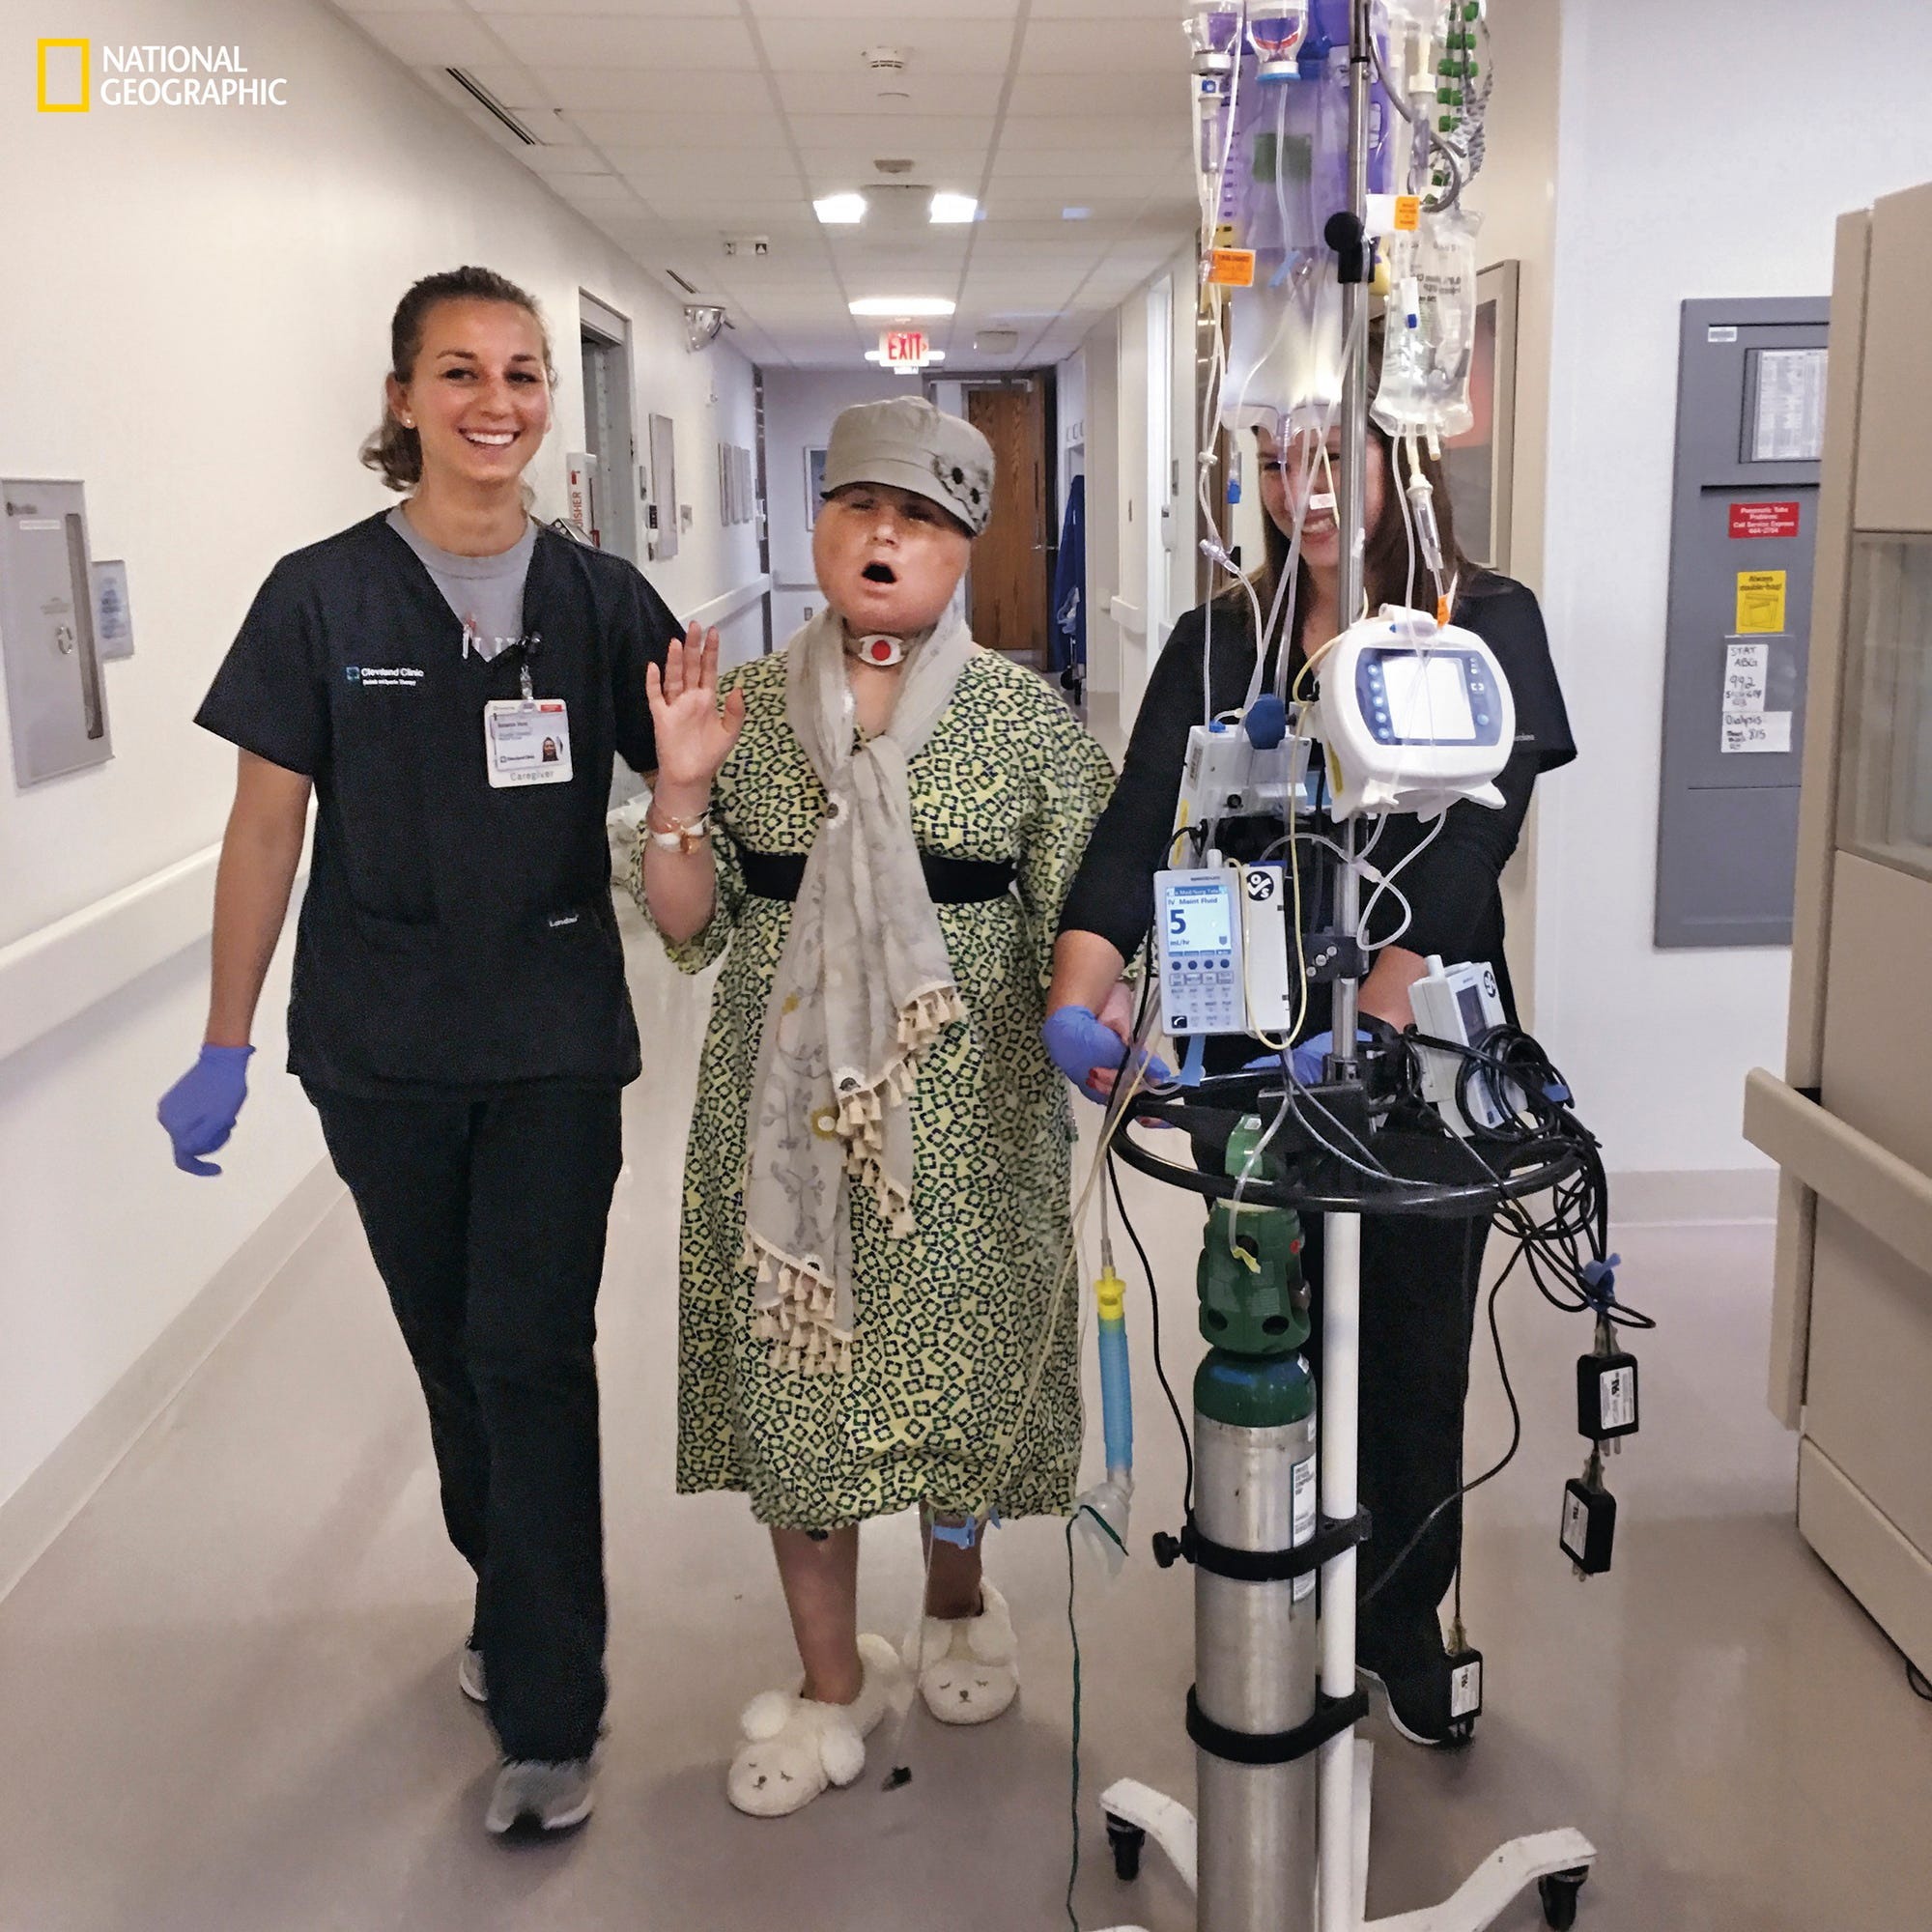 20 days after Katie's transplant On one of her daily walks in the hallways, Katie sings as she exercises with physical therapist Becky Vano (at left) and physical therapy student Nicole Bliss. Before the transplant, Katie had to learn to walk again to overcome spasticity in her limbs caused by the concussive injury to her brain. After the transplant, she had to start over with strengthening her legs.